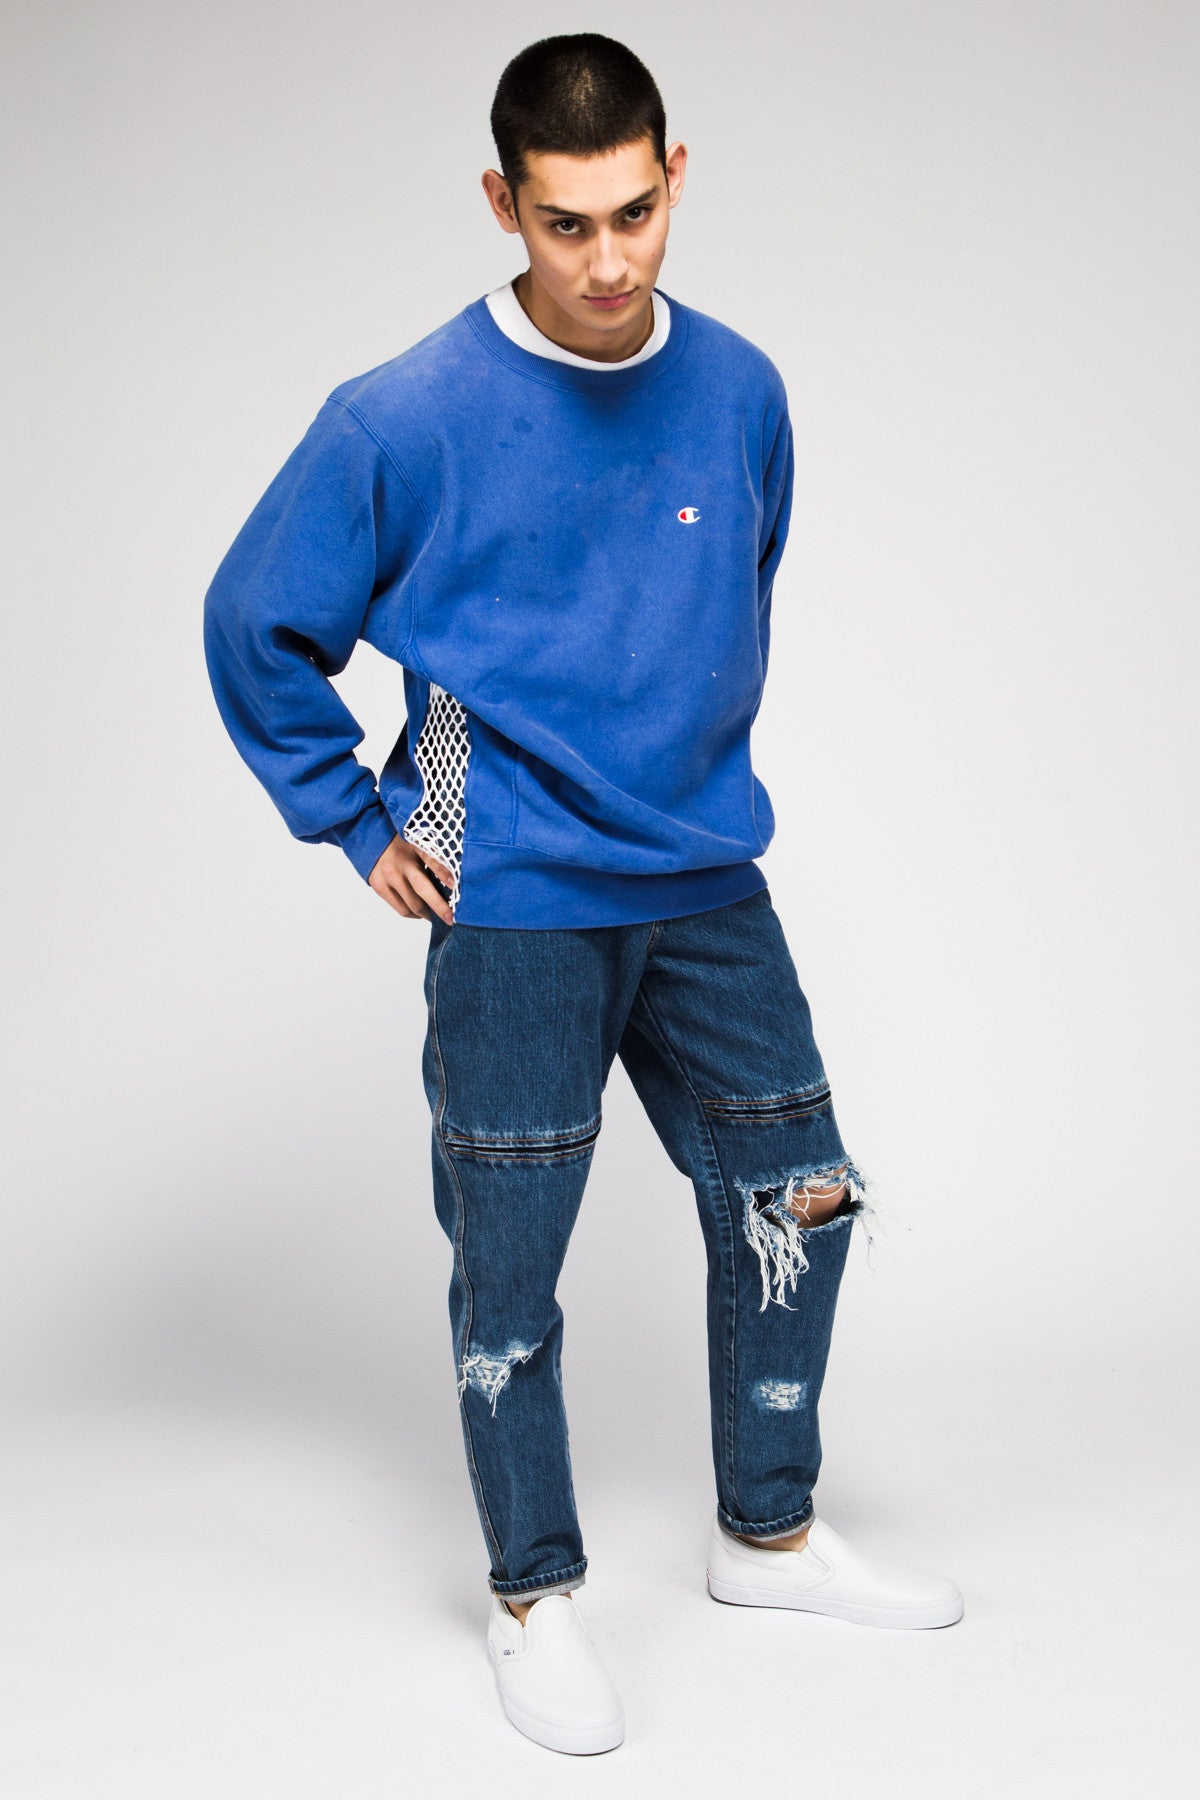 CHAMPION SWEATER IN BLUE LK1